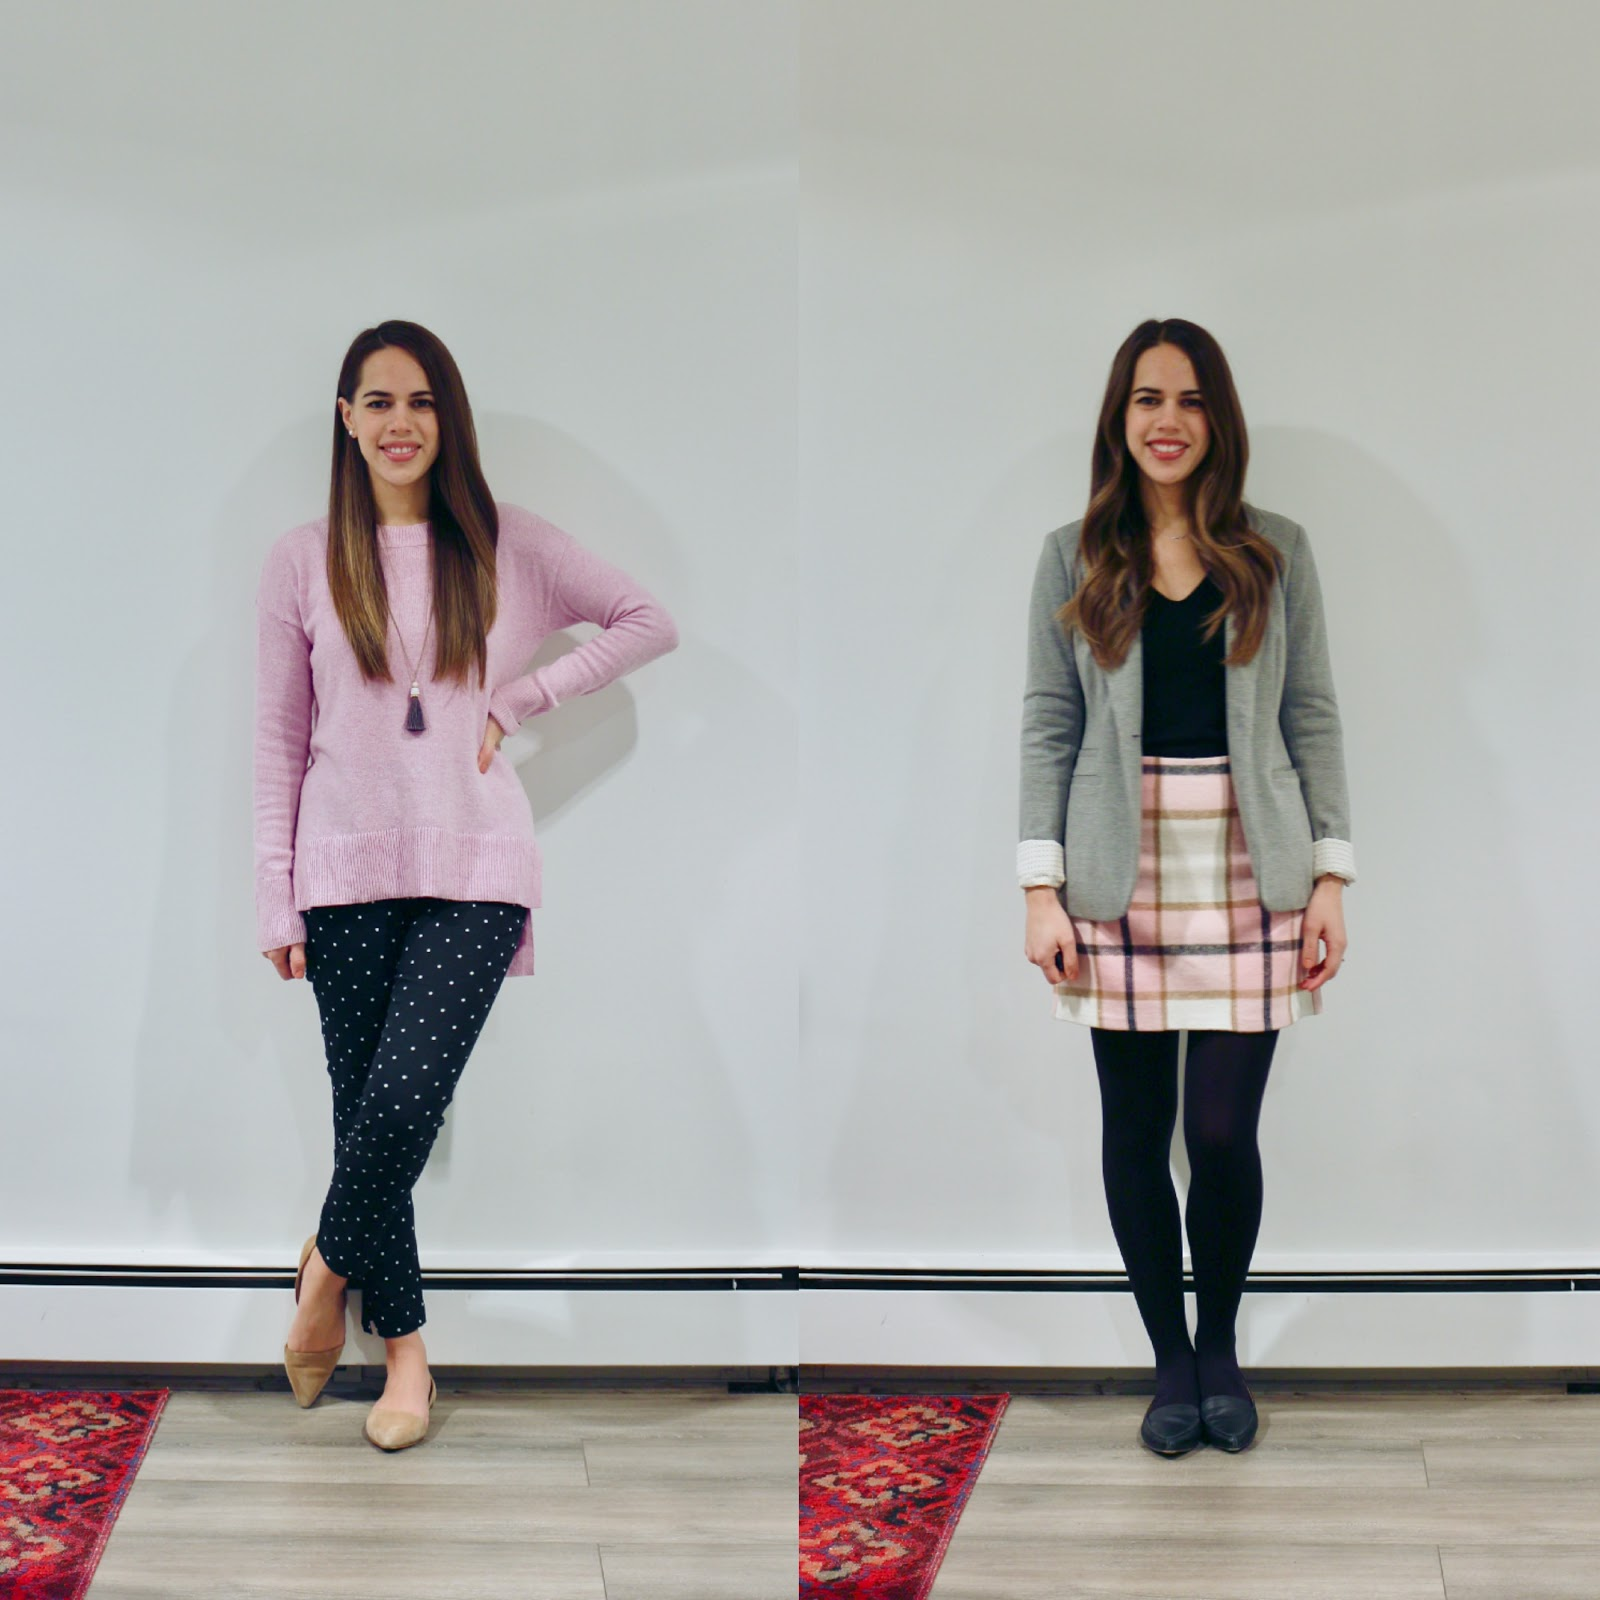 Jules in Flats - December Outfits (Business Casual Winter Workwear on a Budget).